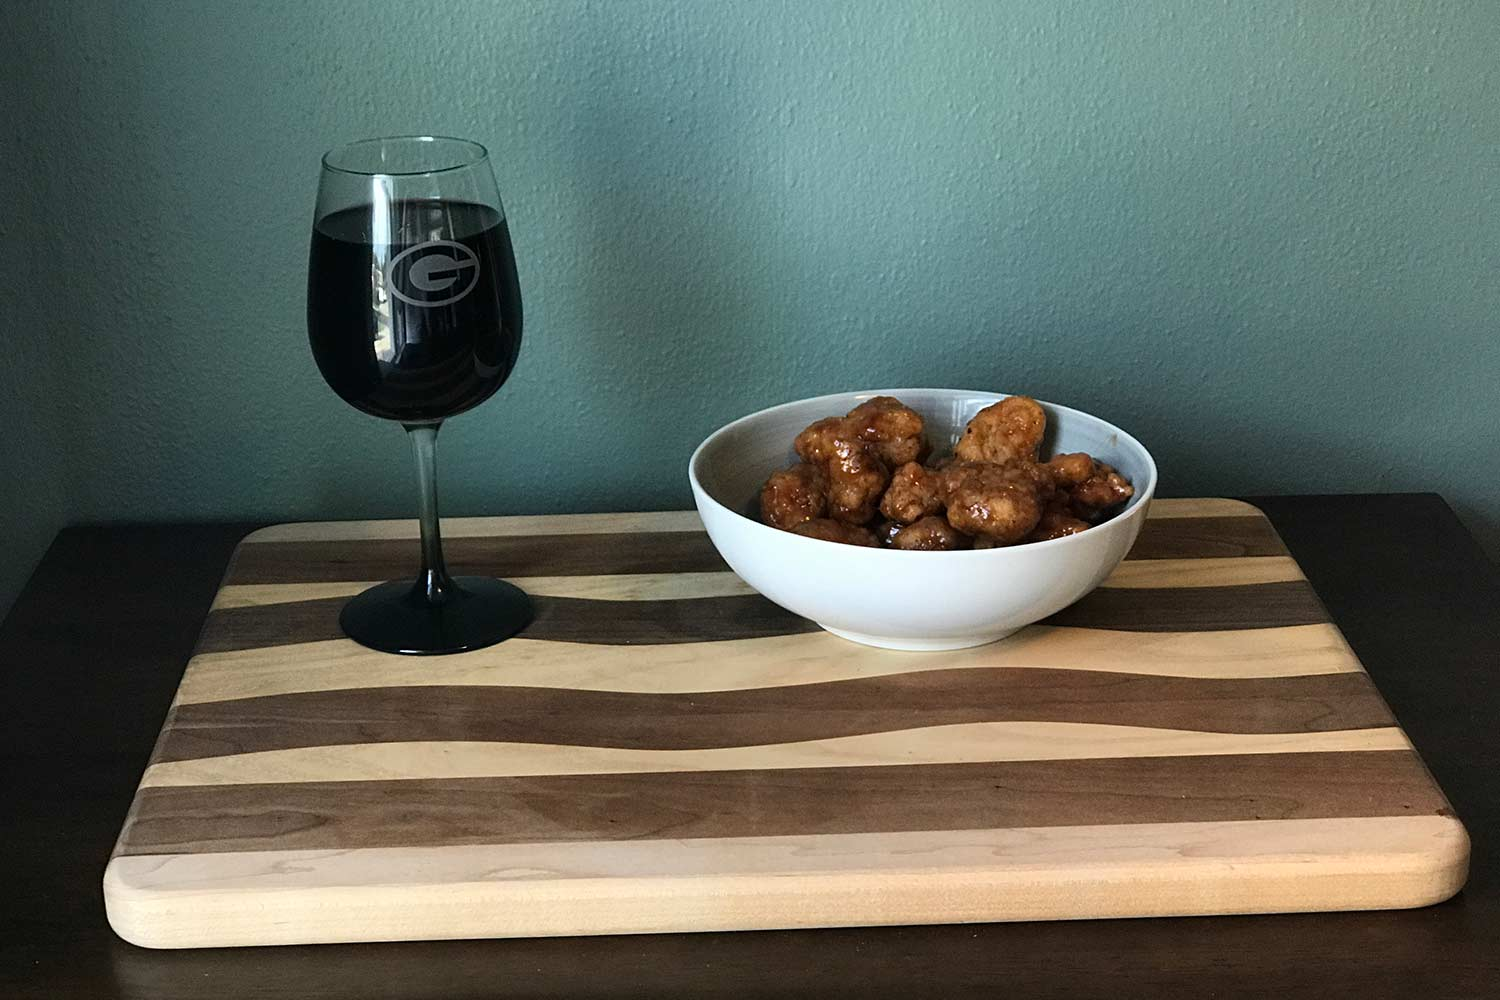 Ice Bowl wine and wings